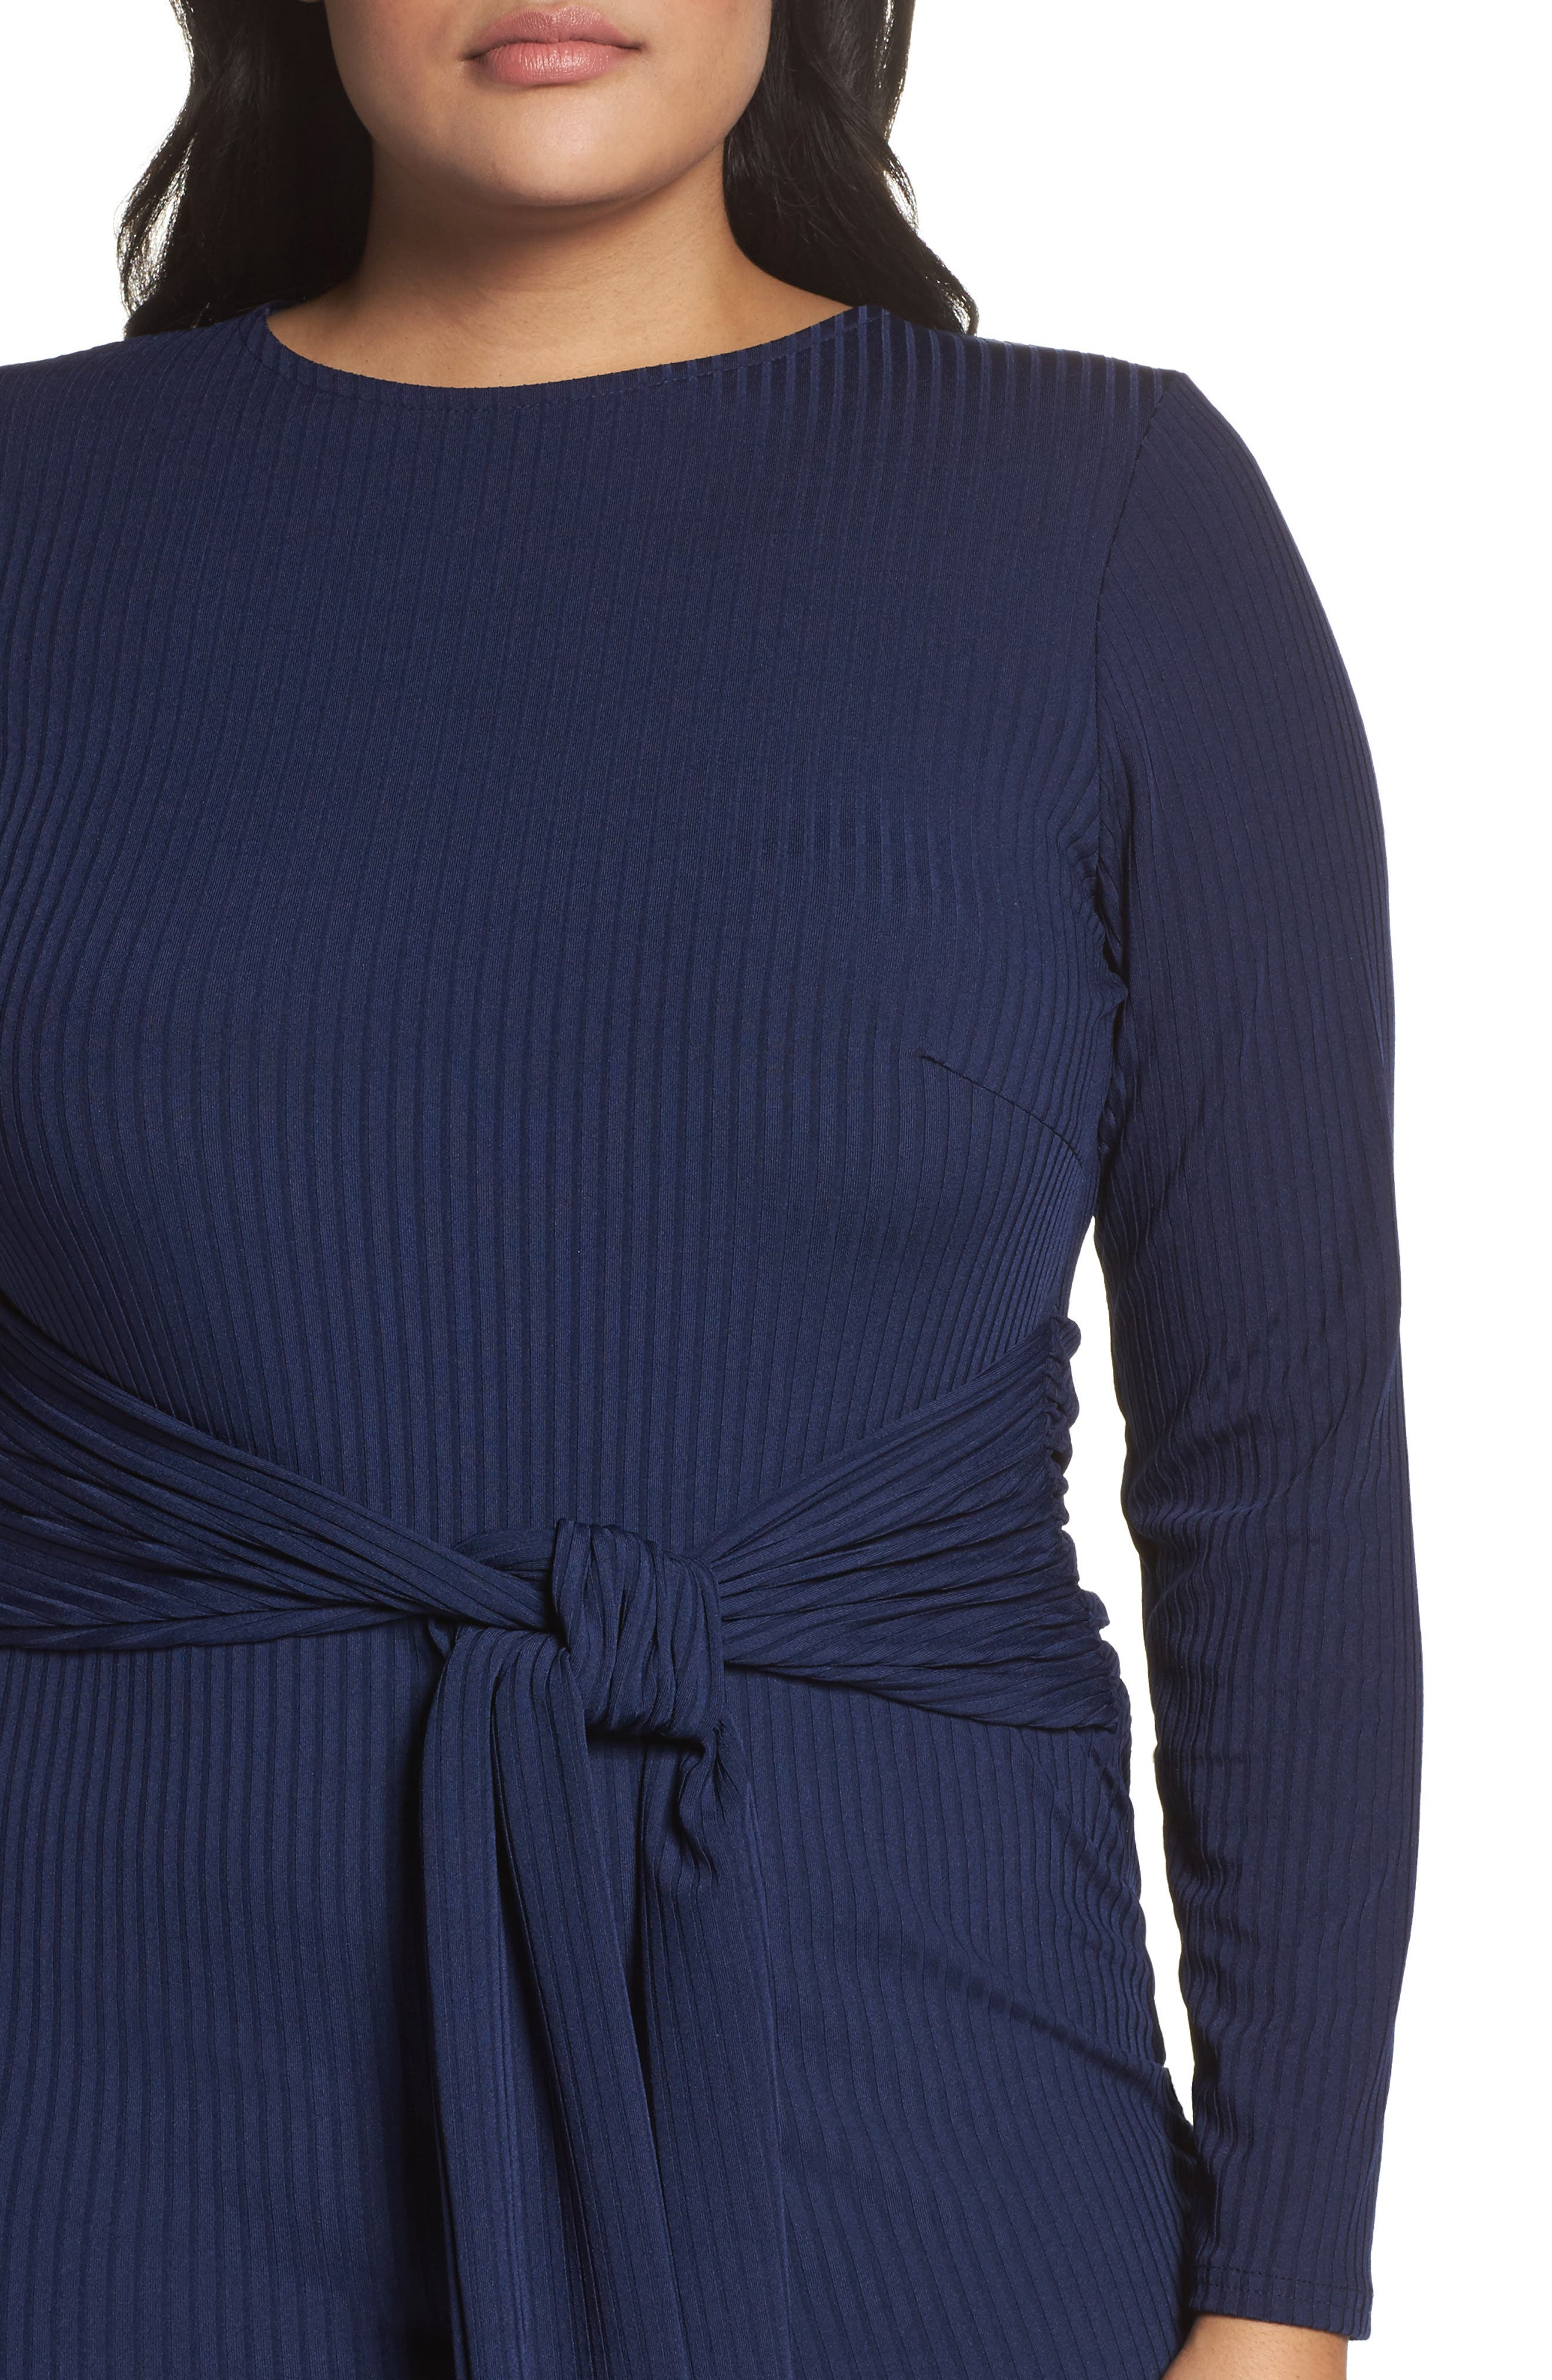 Tie Front Ribbed Sheath Dress,                             Alternate thumbnail 6, color,                             Navy